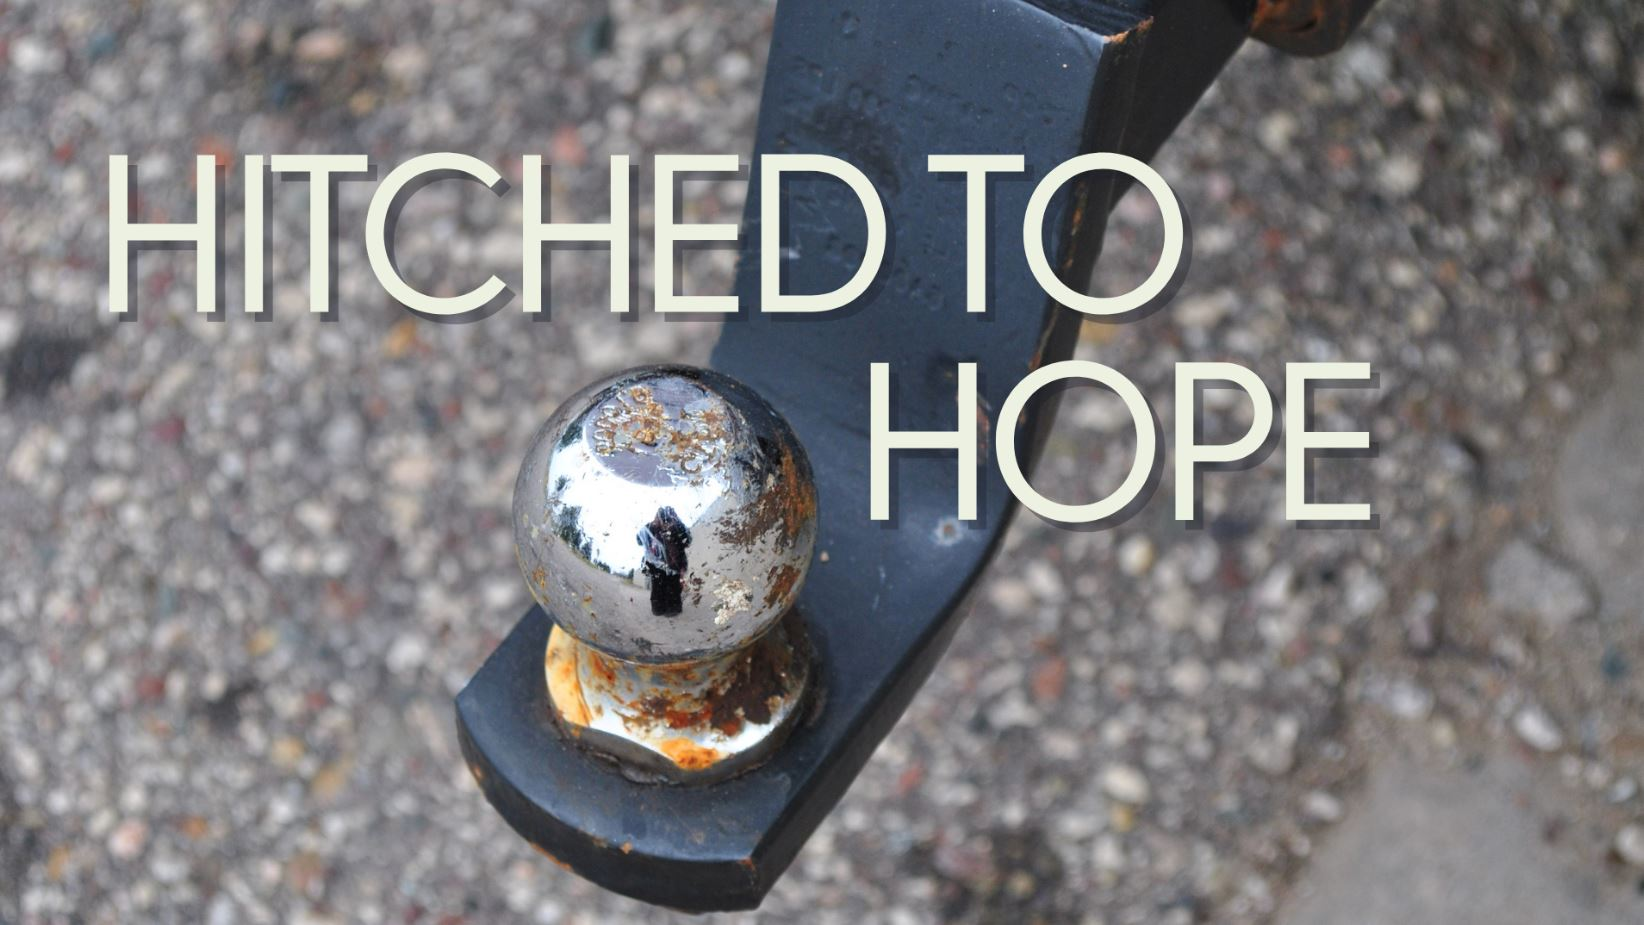 Hitched to Hope